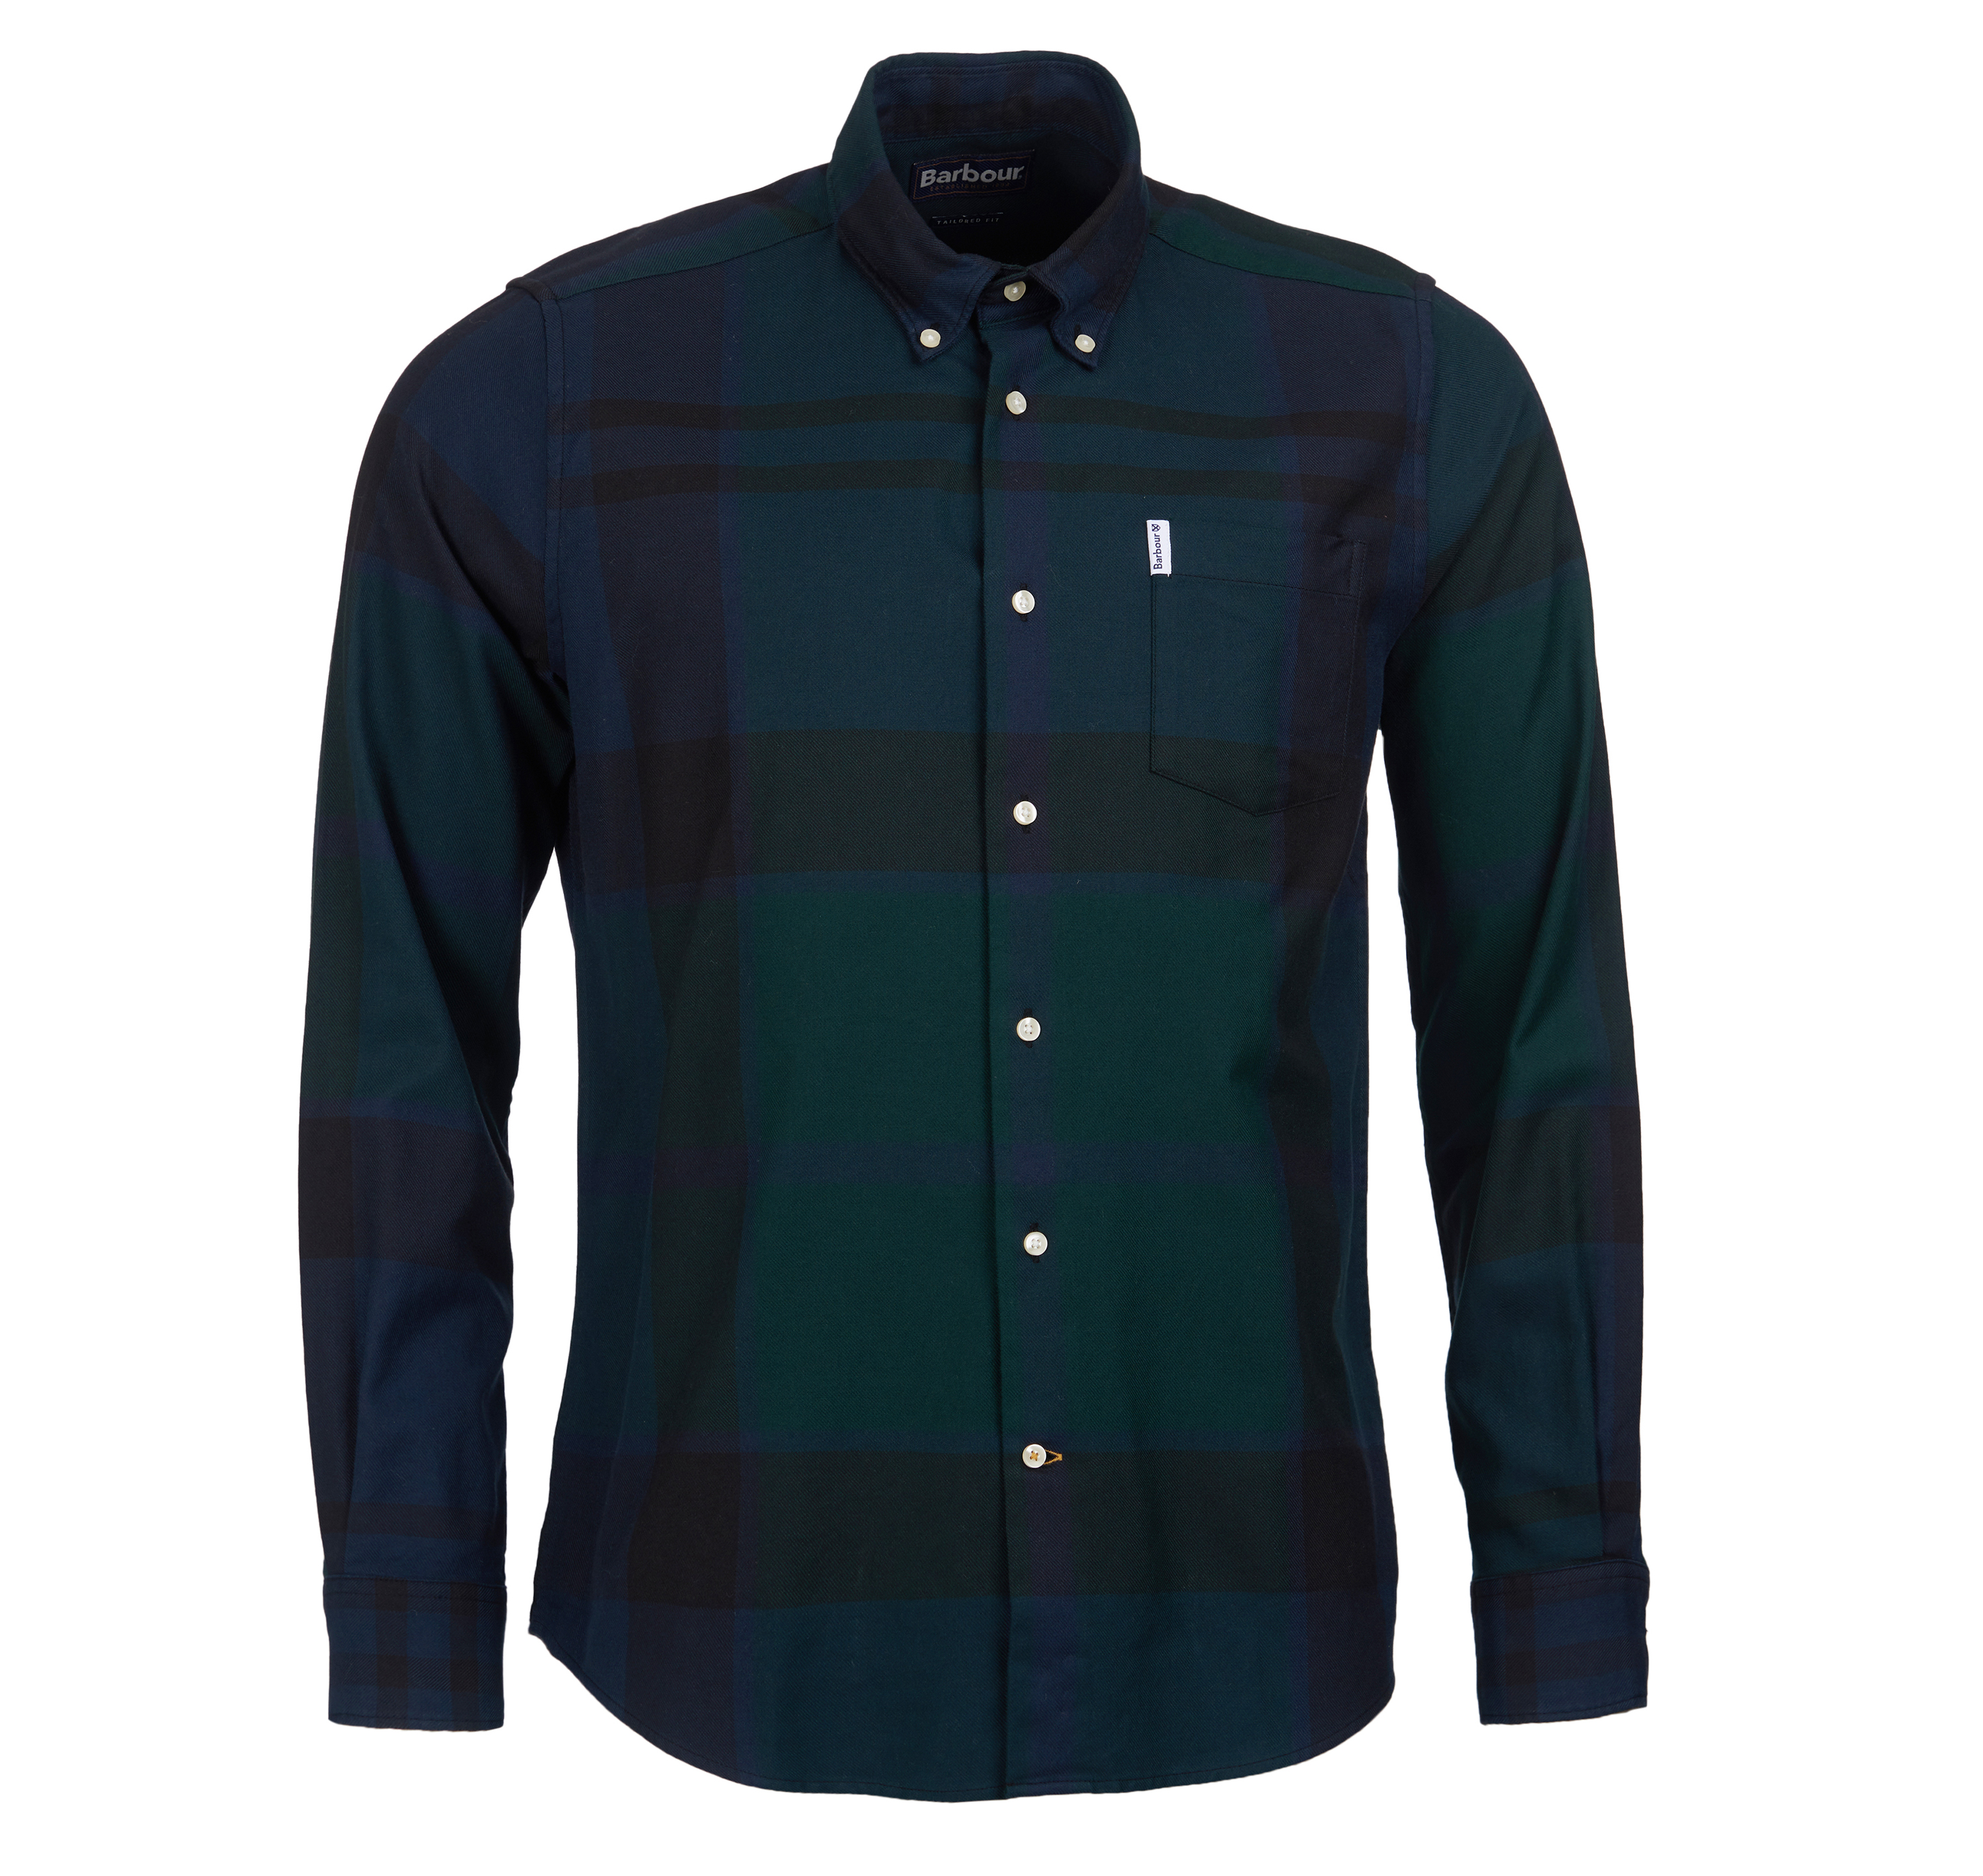 Barbour Dunoon Tailored Shirt Black Barbour International